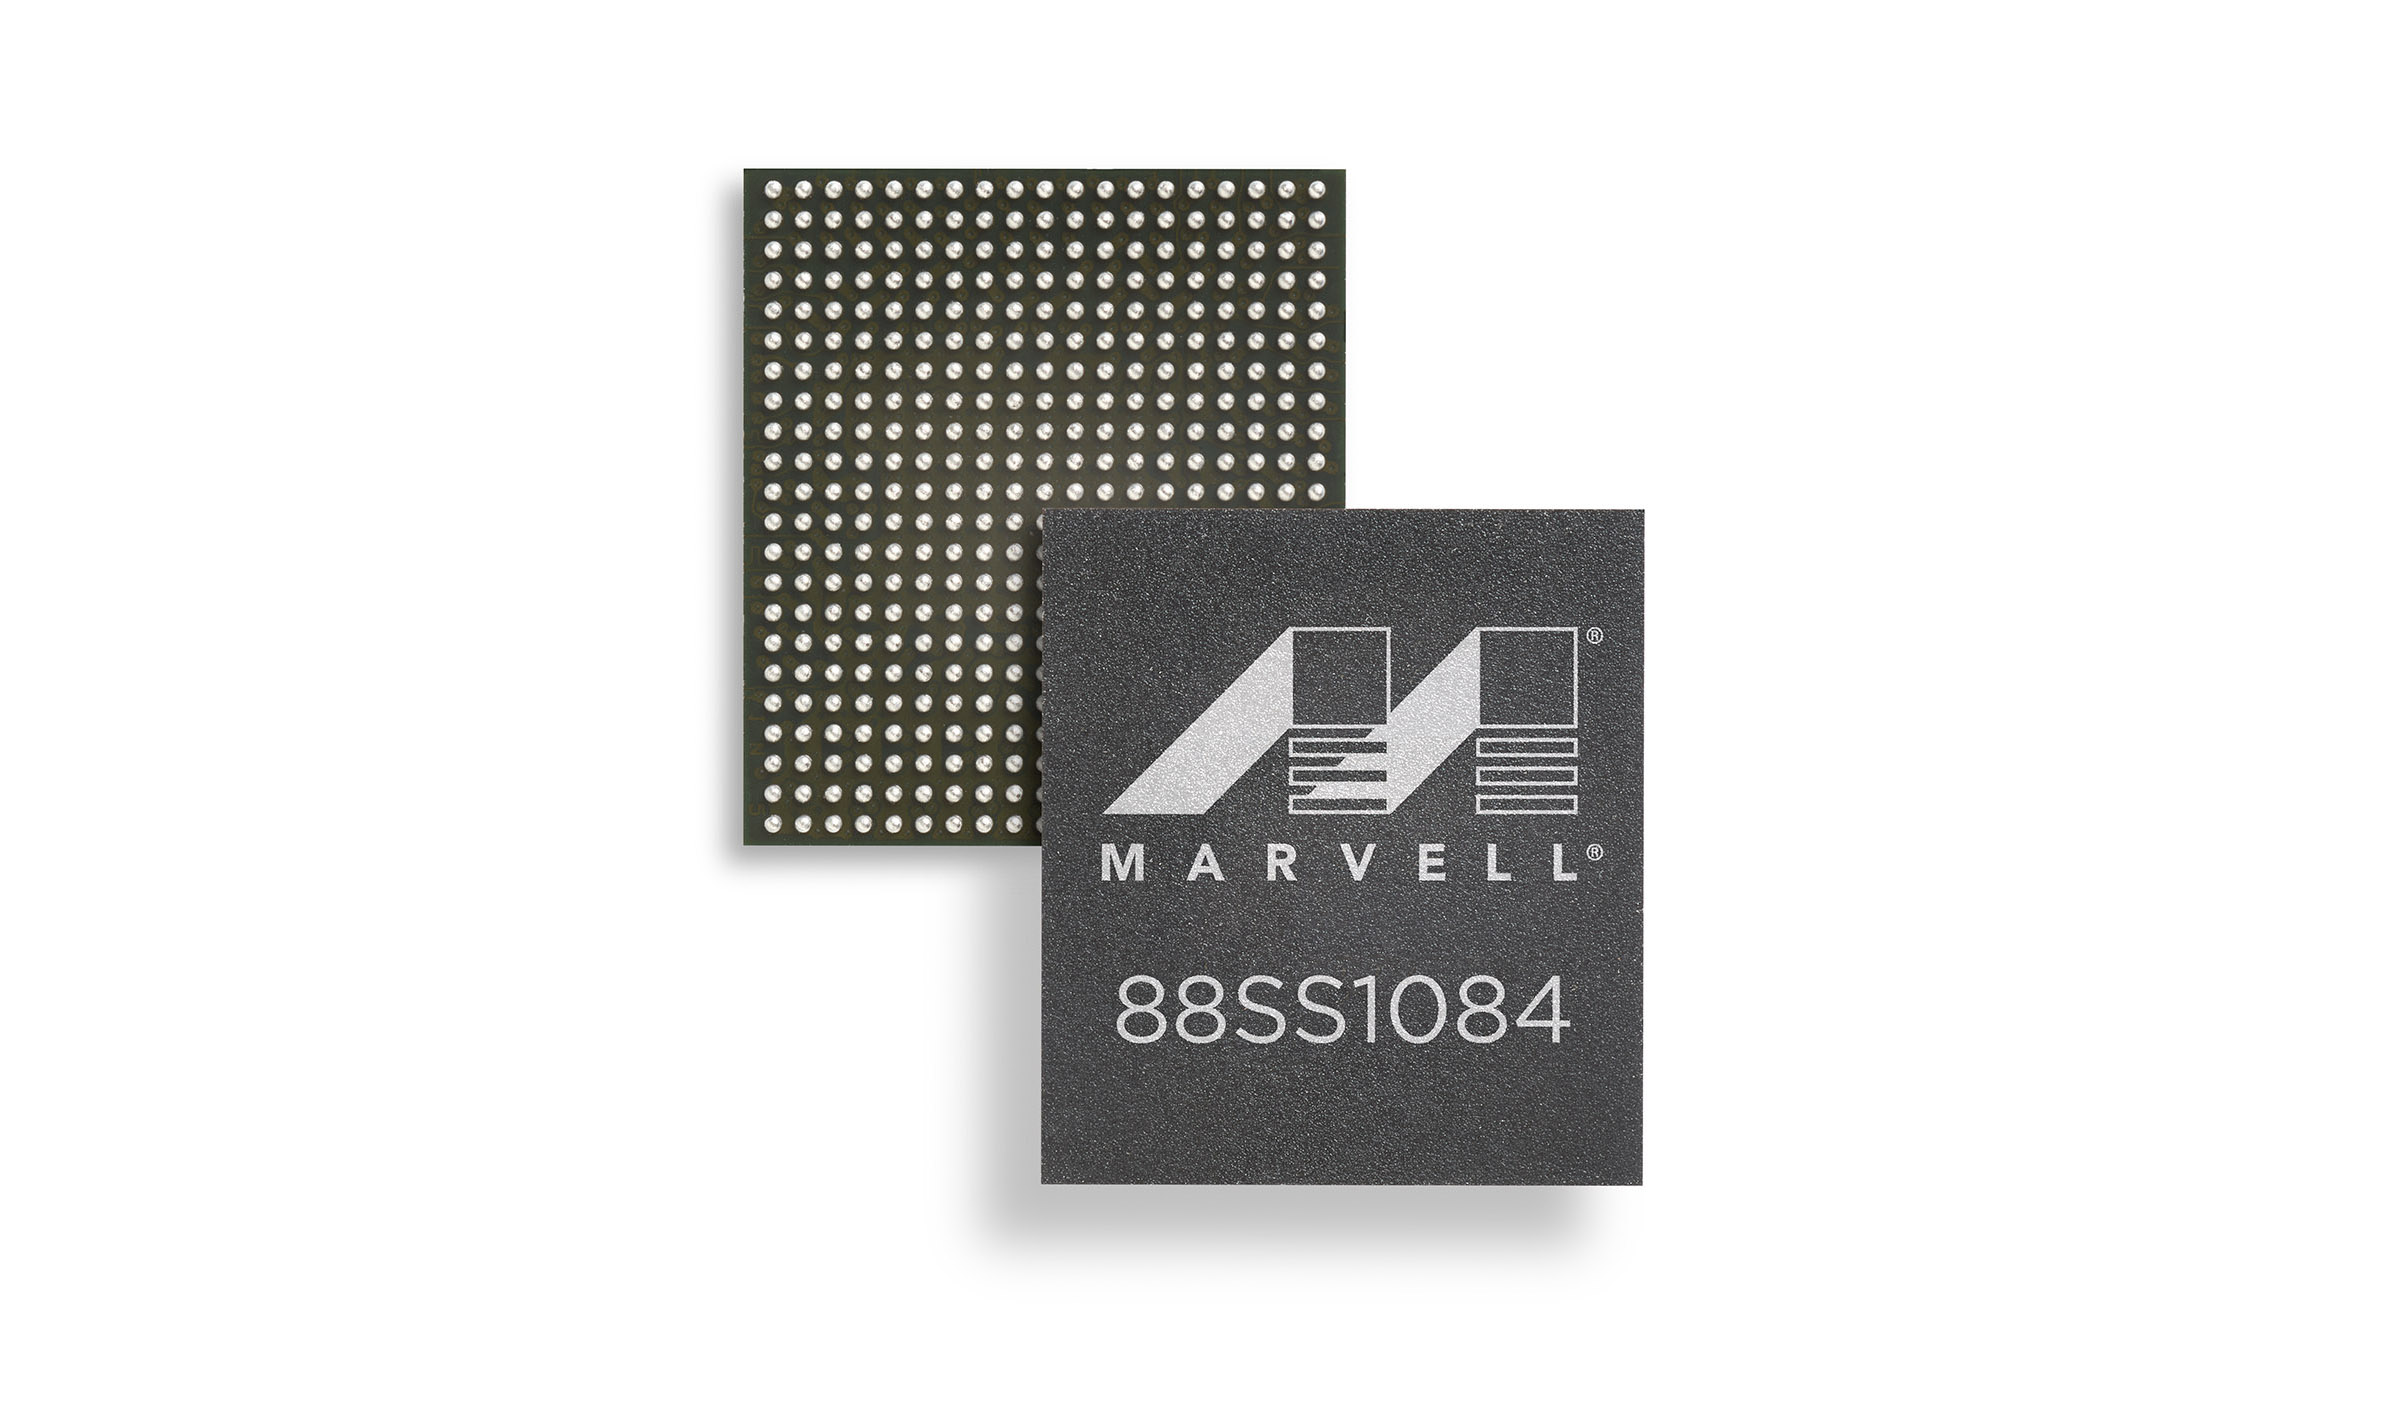 The new Marvell client NVMe™ SSD controllers integrate Marvell's fourth generation of NANDEdge™ technology, offering the advanced error correction capabilities to address the increasing demands required to enable future SSD solutions with emerging 96-layer triple level-cell (TLC) and quad level-cell (QLC) NAND architectures.